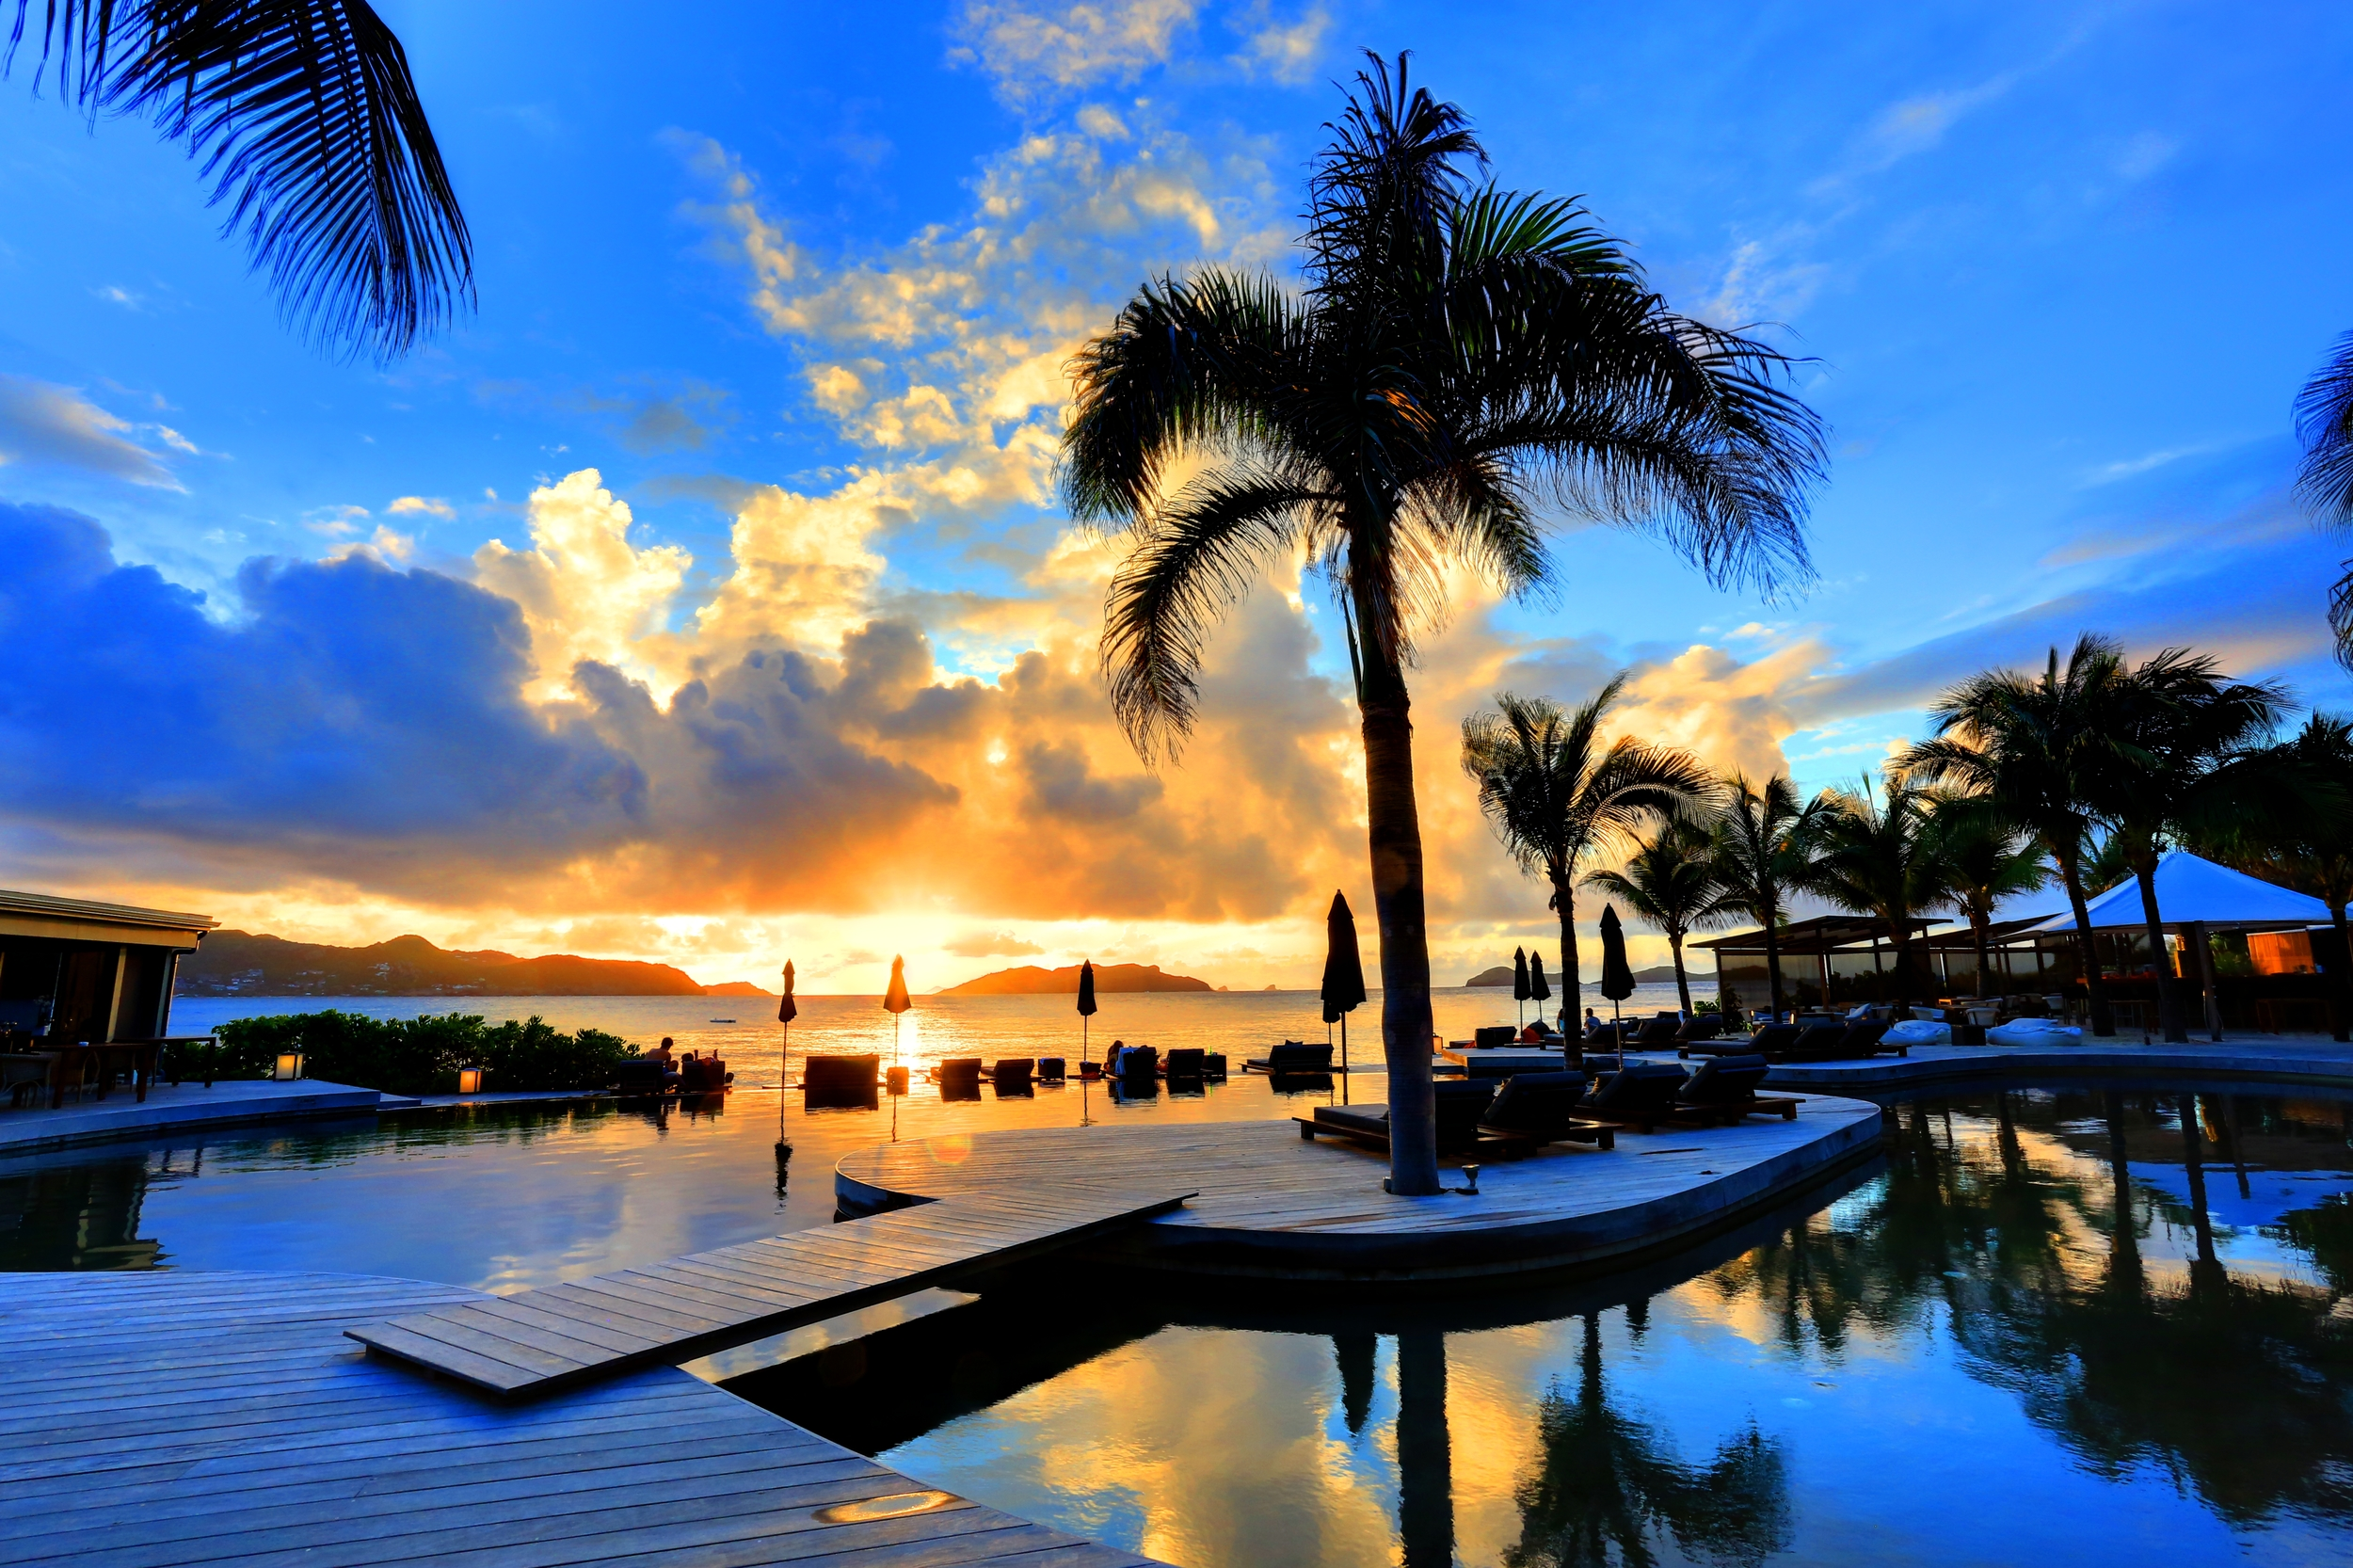 caribbean_StBarths_Hotel_Christopher_Sunset by Piter 2013 HD (1).jpg